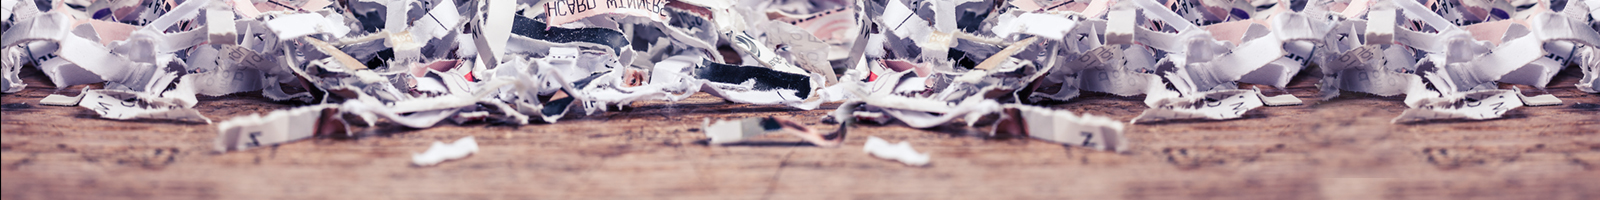 paper shredding services Shredding services assured document destruction specializes in secure shredding services whether it's on an on-going, regular basis for your office or a one-time.